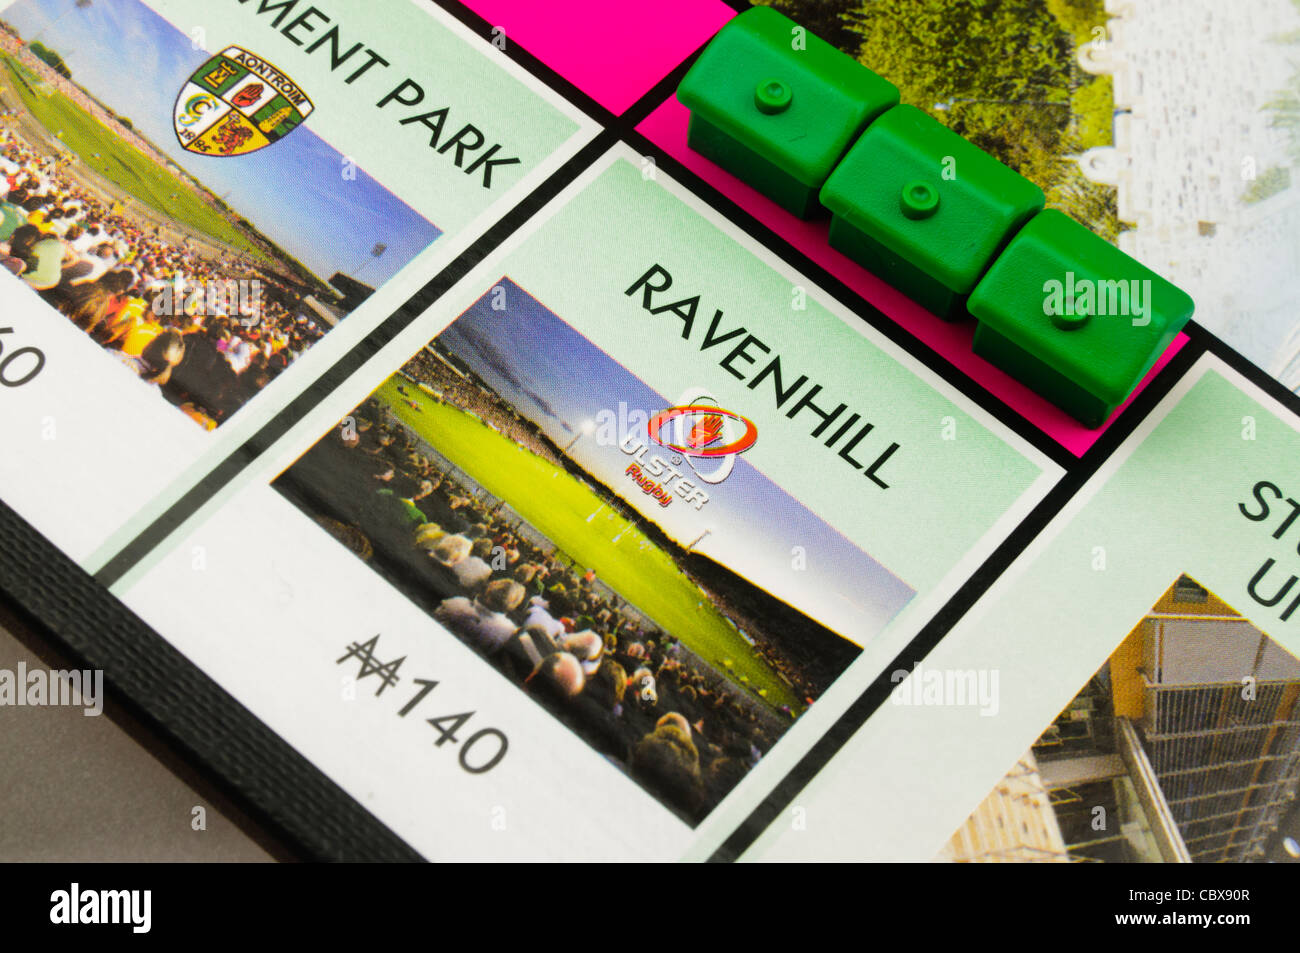 Belfast Monopoly: Building houses on Ravenhill Rugby Ground - Stock Image